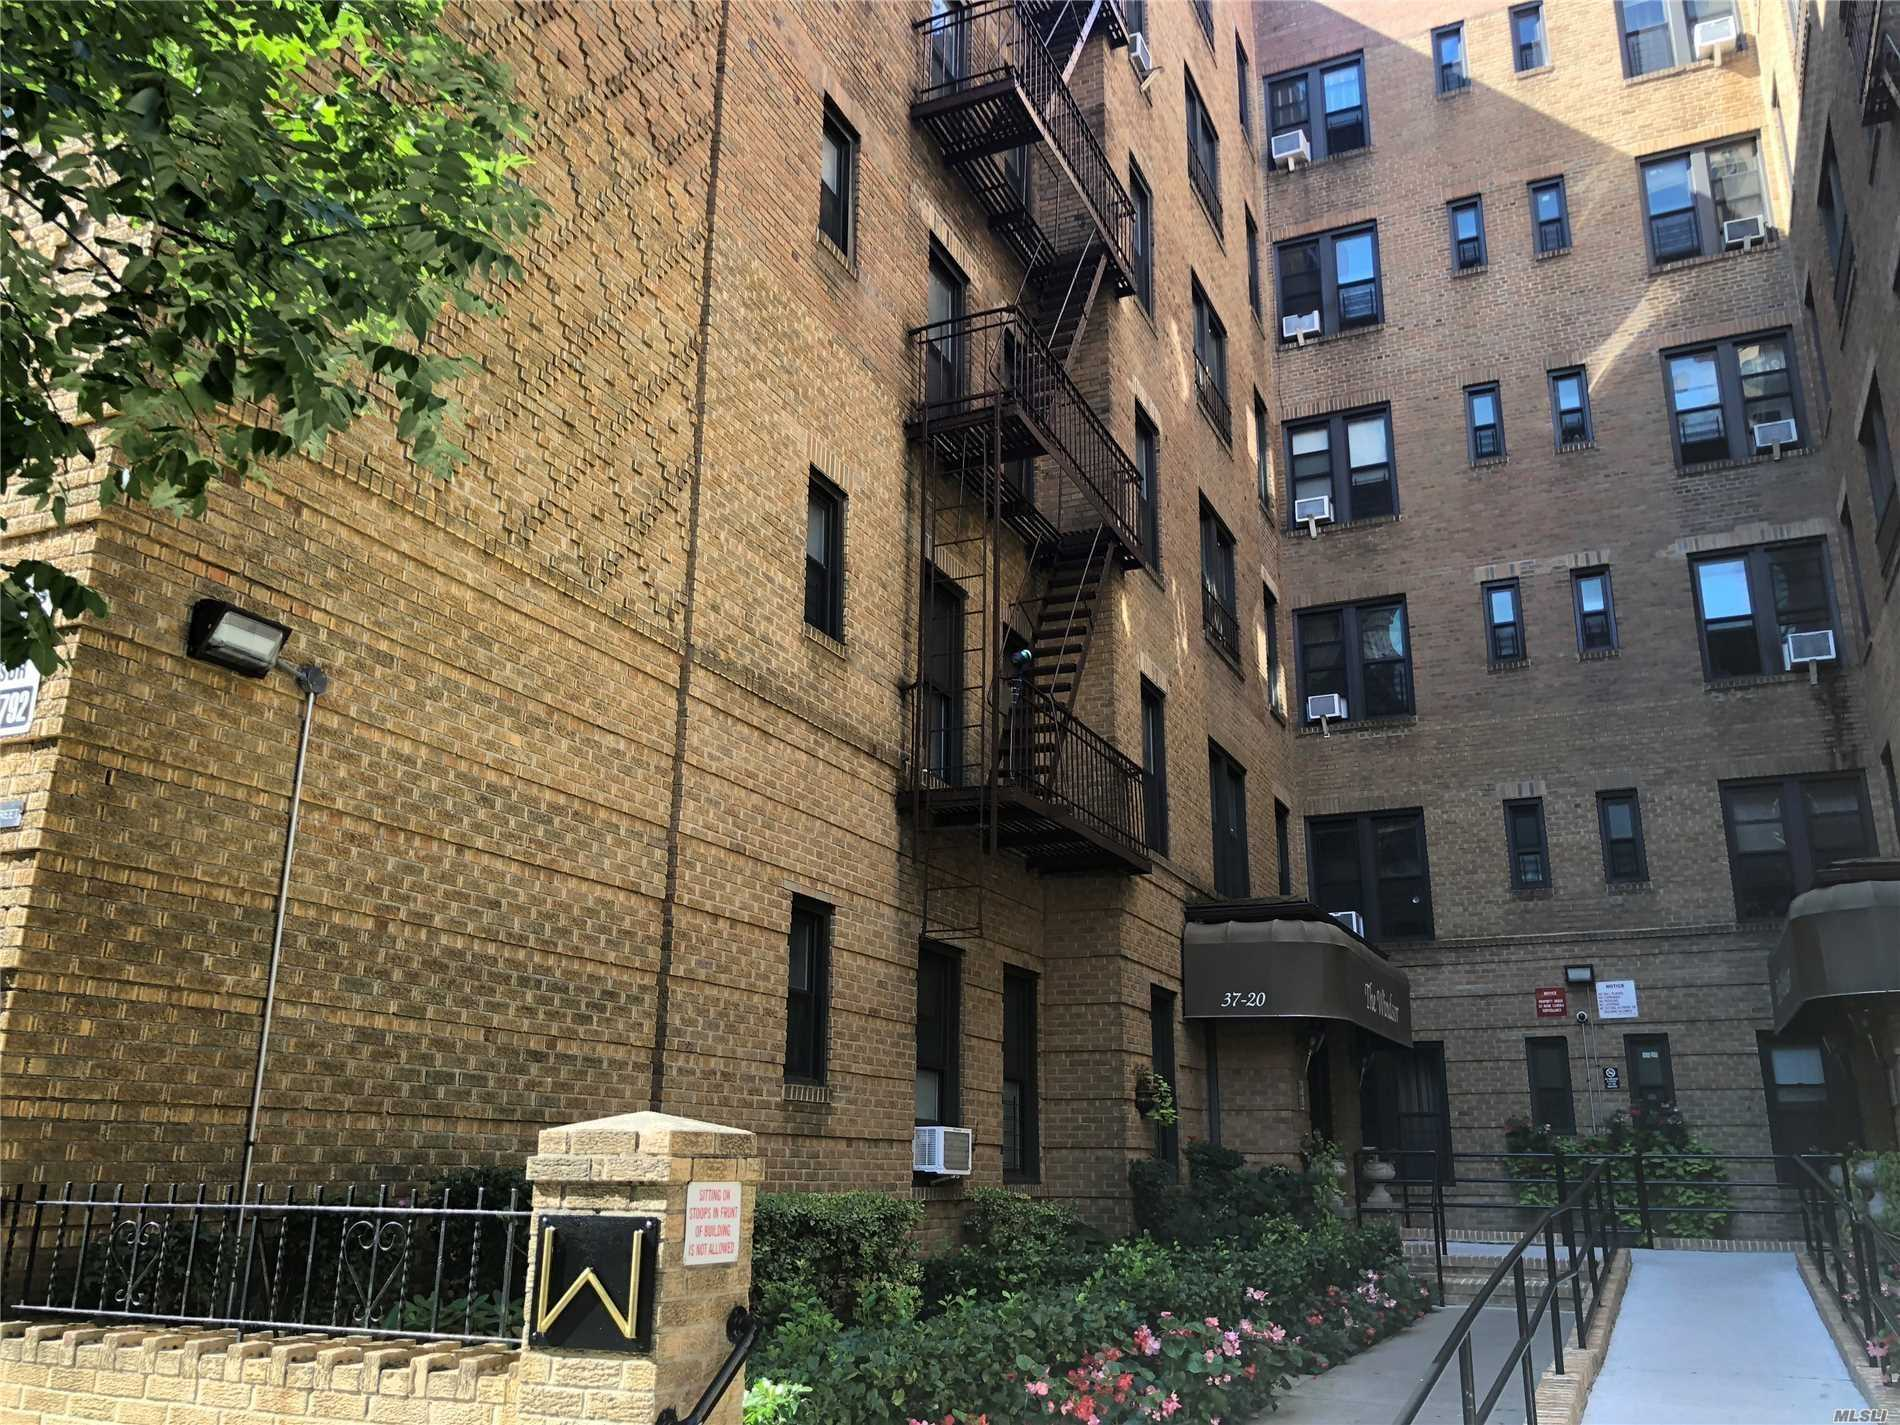 Beautiful 1 Bedroom Co-Op Apartment In Jackson Heights. Beautiful Renovated Kitchen With Granite Countertop And Stainless Steel Appliances. Hardwood Floor Throughout, Close To Train Station, Restaurants And Shopping. Low Maintenance Fee. Immediate Subletting Allowed with board approval.